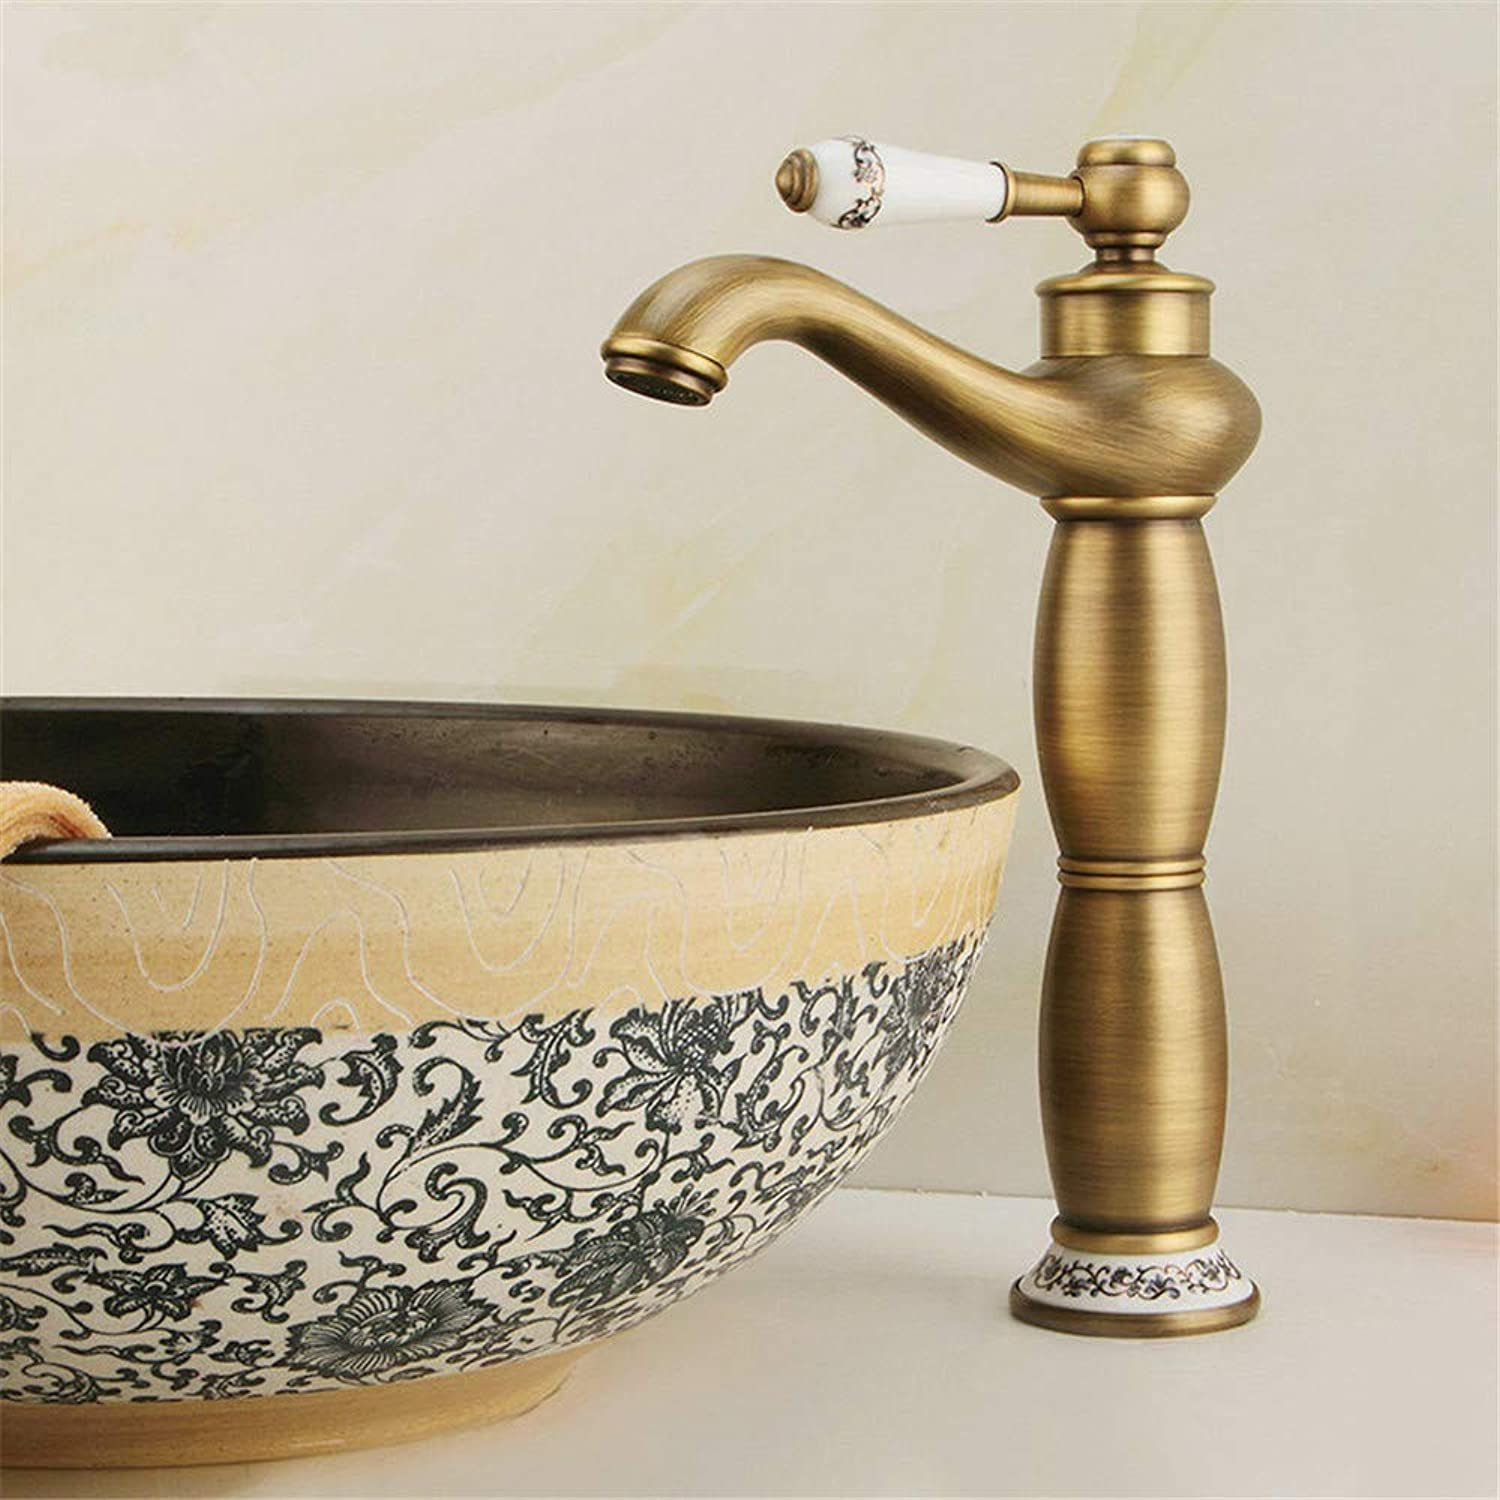 YAWEDA Ancient All-Bronze Basin Faucet bluee and White Porcelain Cold and Hot Water Mixer Single-Hole Bathroom Sink Faucet Ceramic Single-Handled Belt Aerator